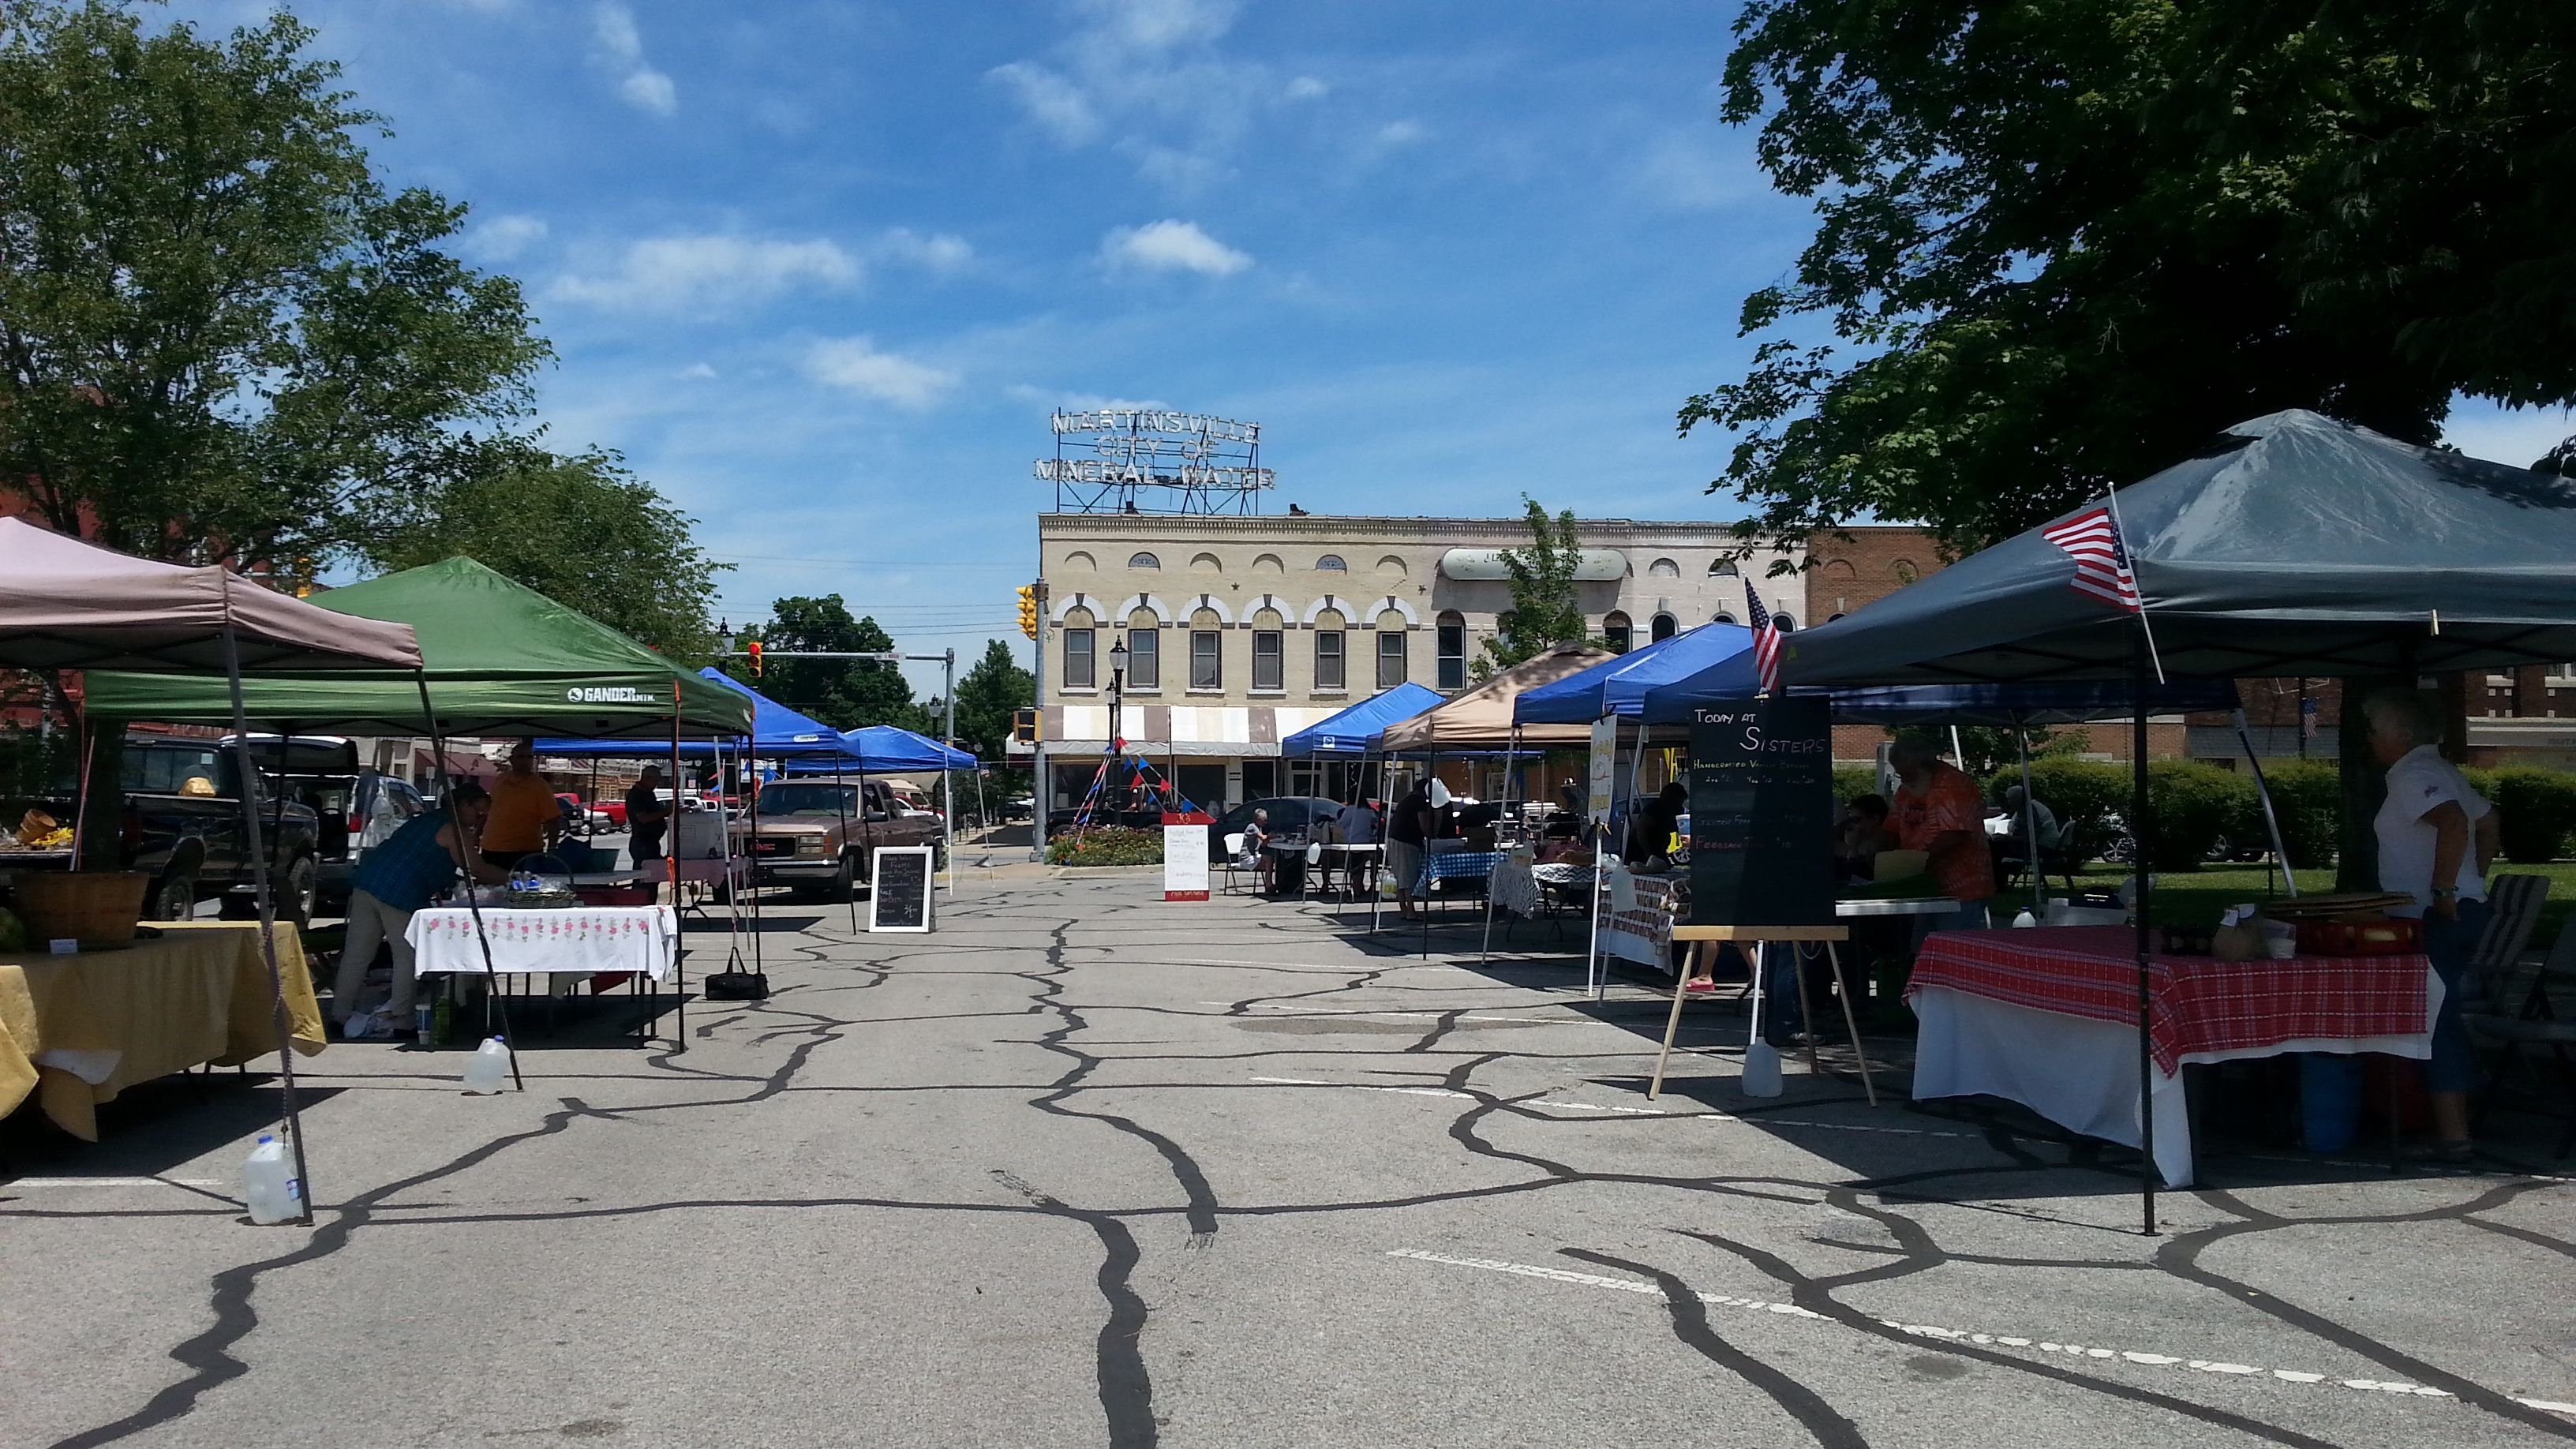 The County Farmers' Market takes place in